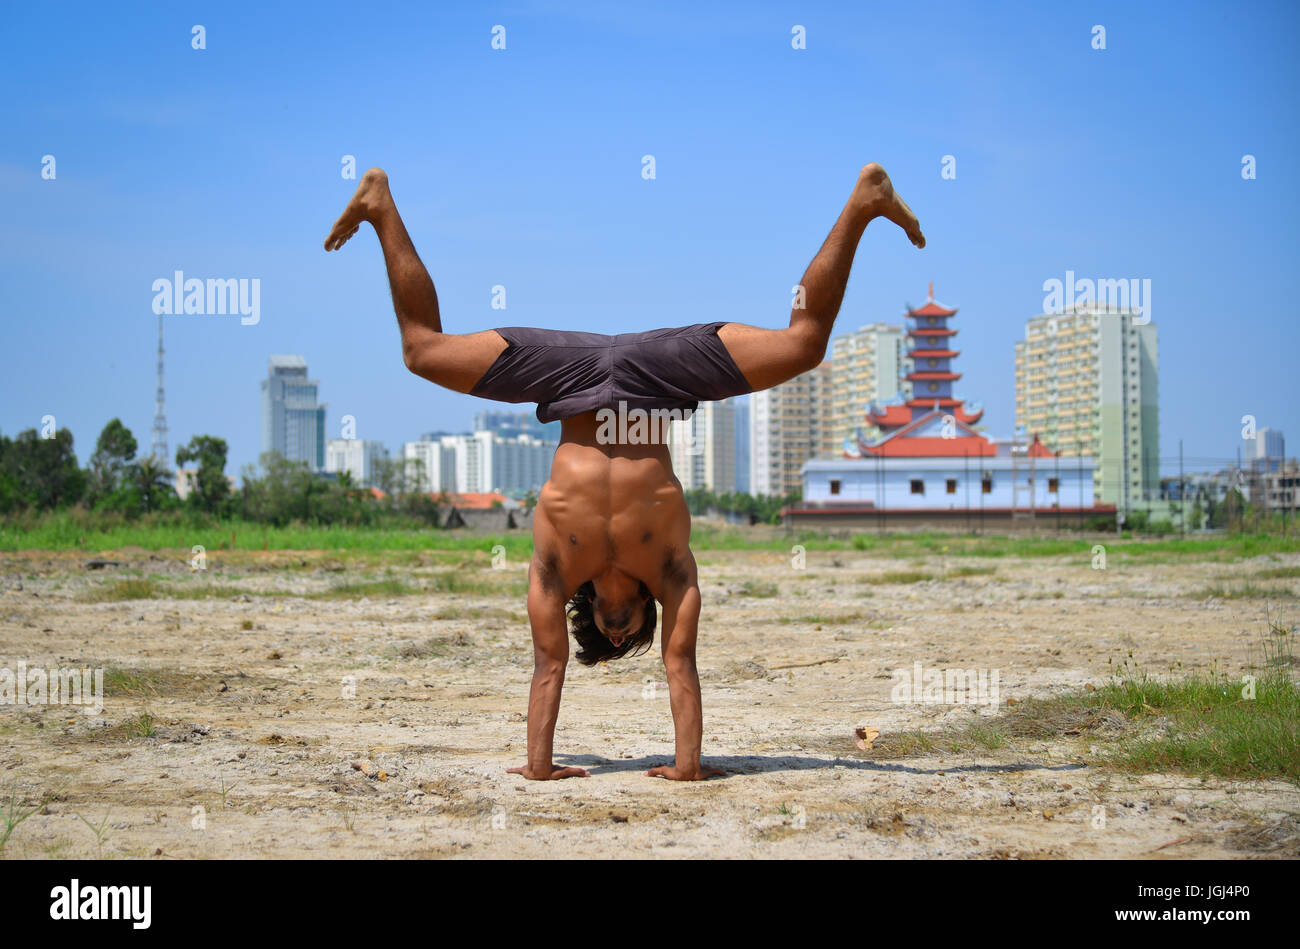 An Indian Man Doing Advanced Yoga Poses At Sunny Day With Cityscape Background